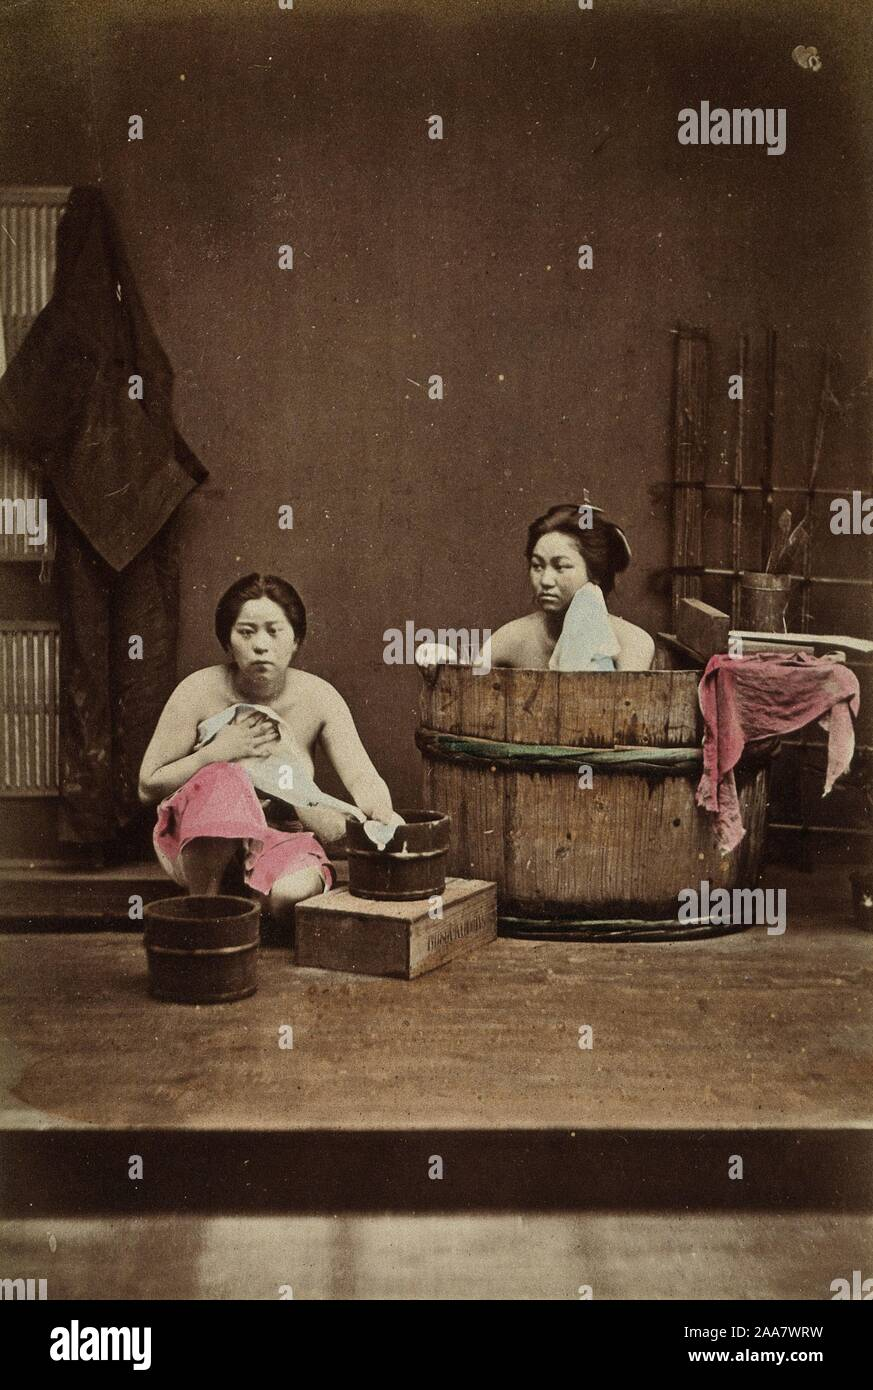 Vintage Tub Woman High Resolution Stock Photography and Images - Alamy